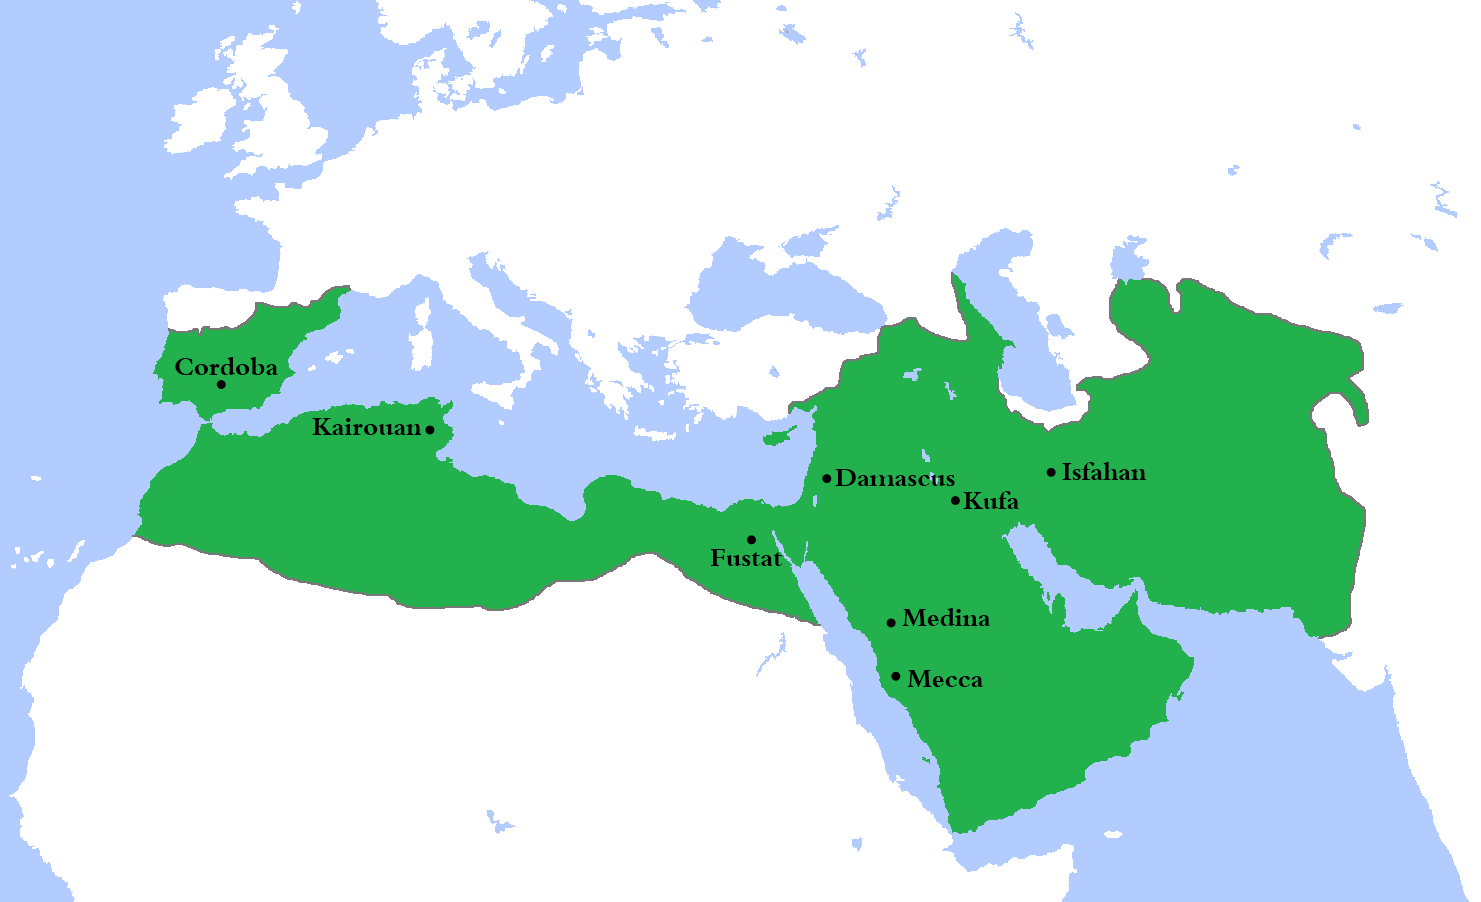 Islamic Empire Map The rise of Islamic empires and states (article) | Khan Academy